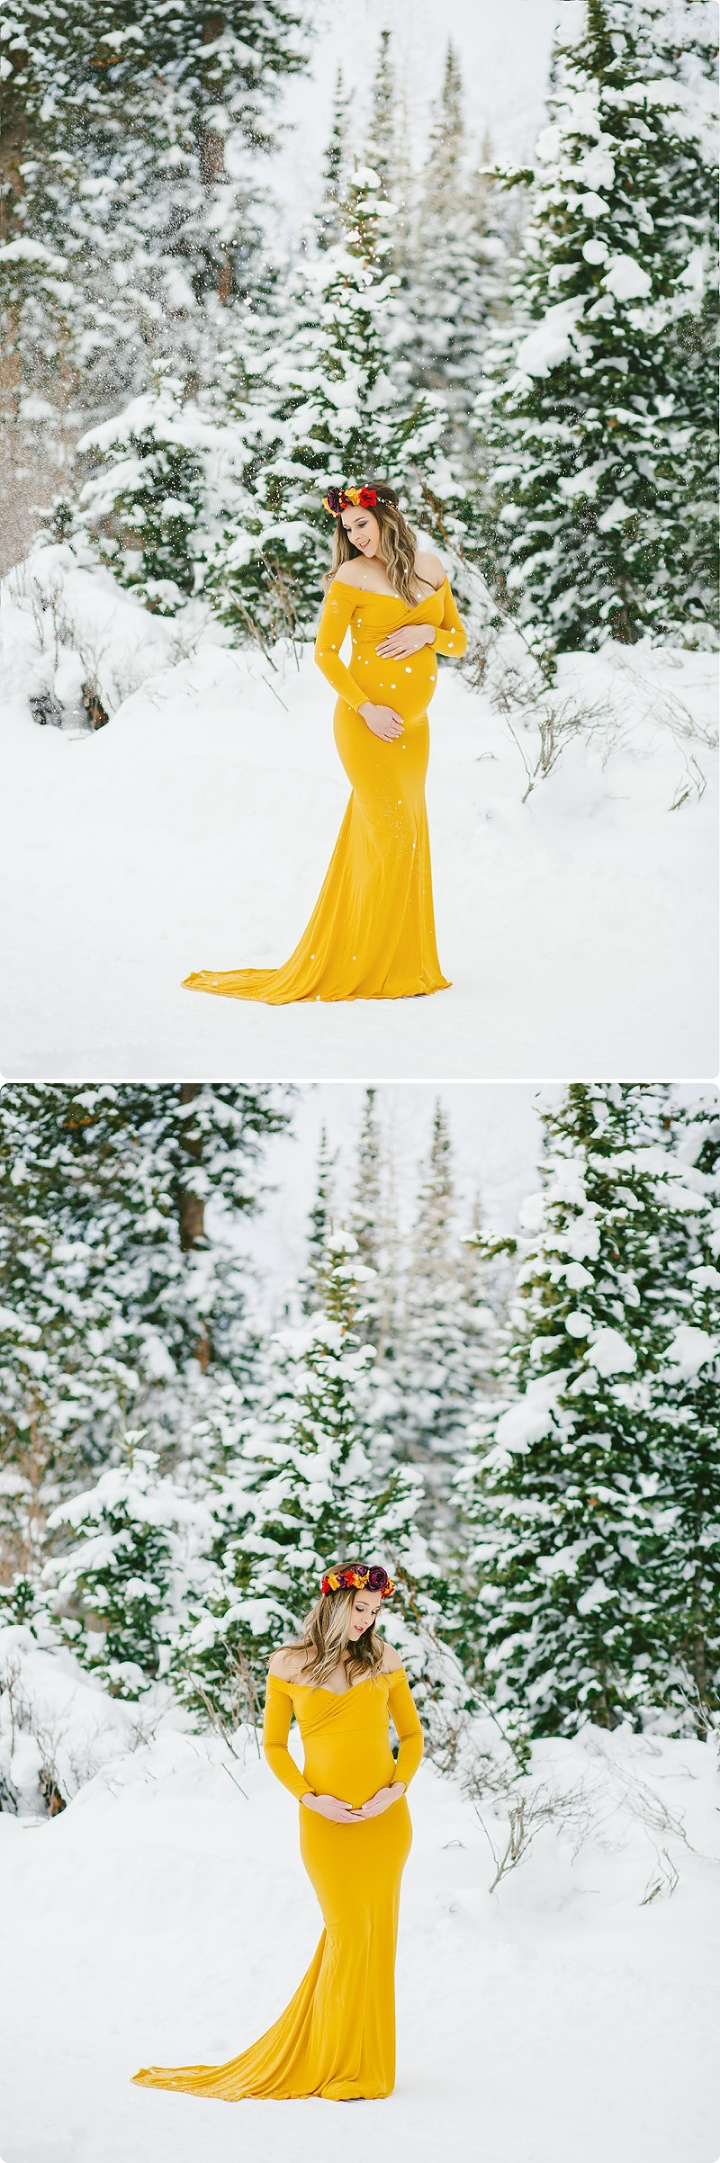 maternity,maternity gowns,maternity photographer,maternity session,snow maternity,snow session,winter session,